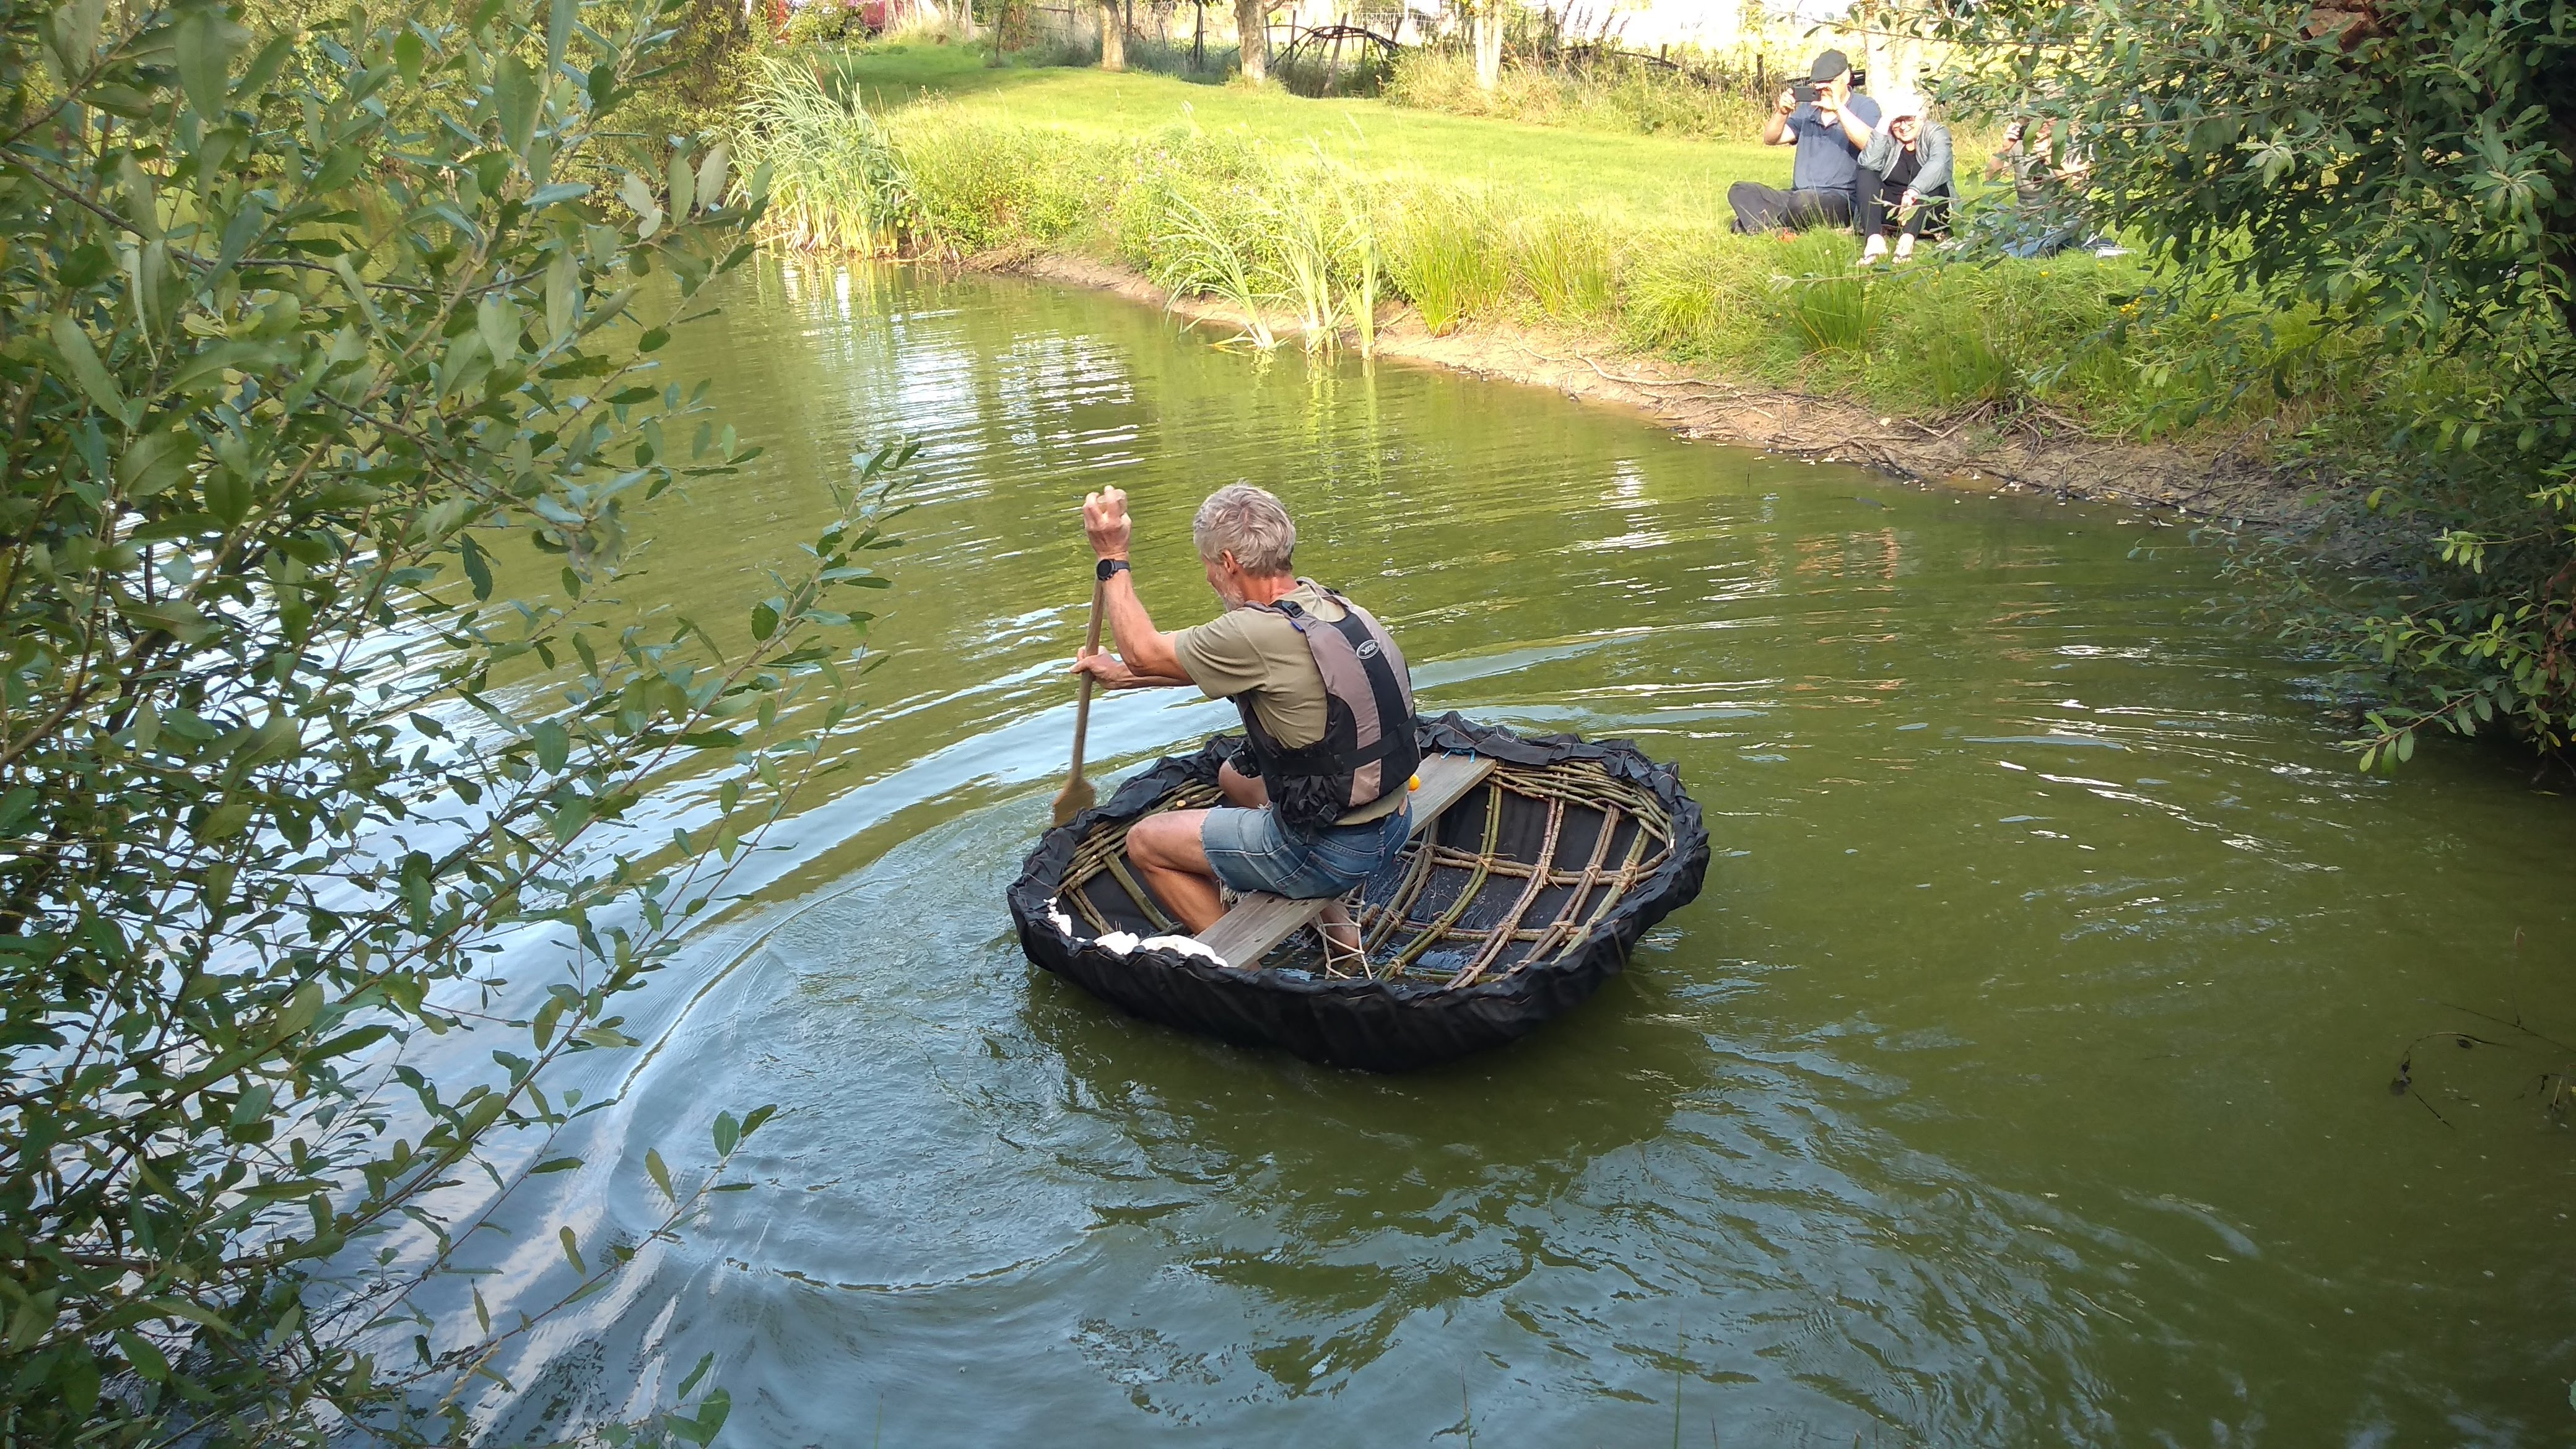 Coracle build